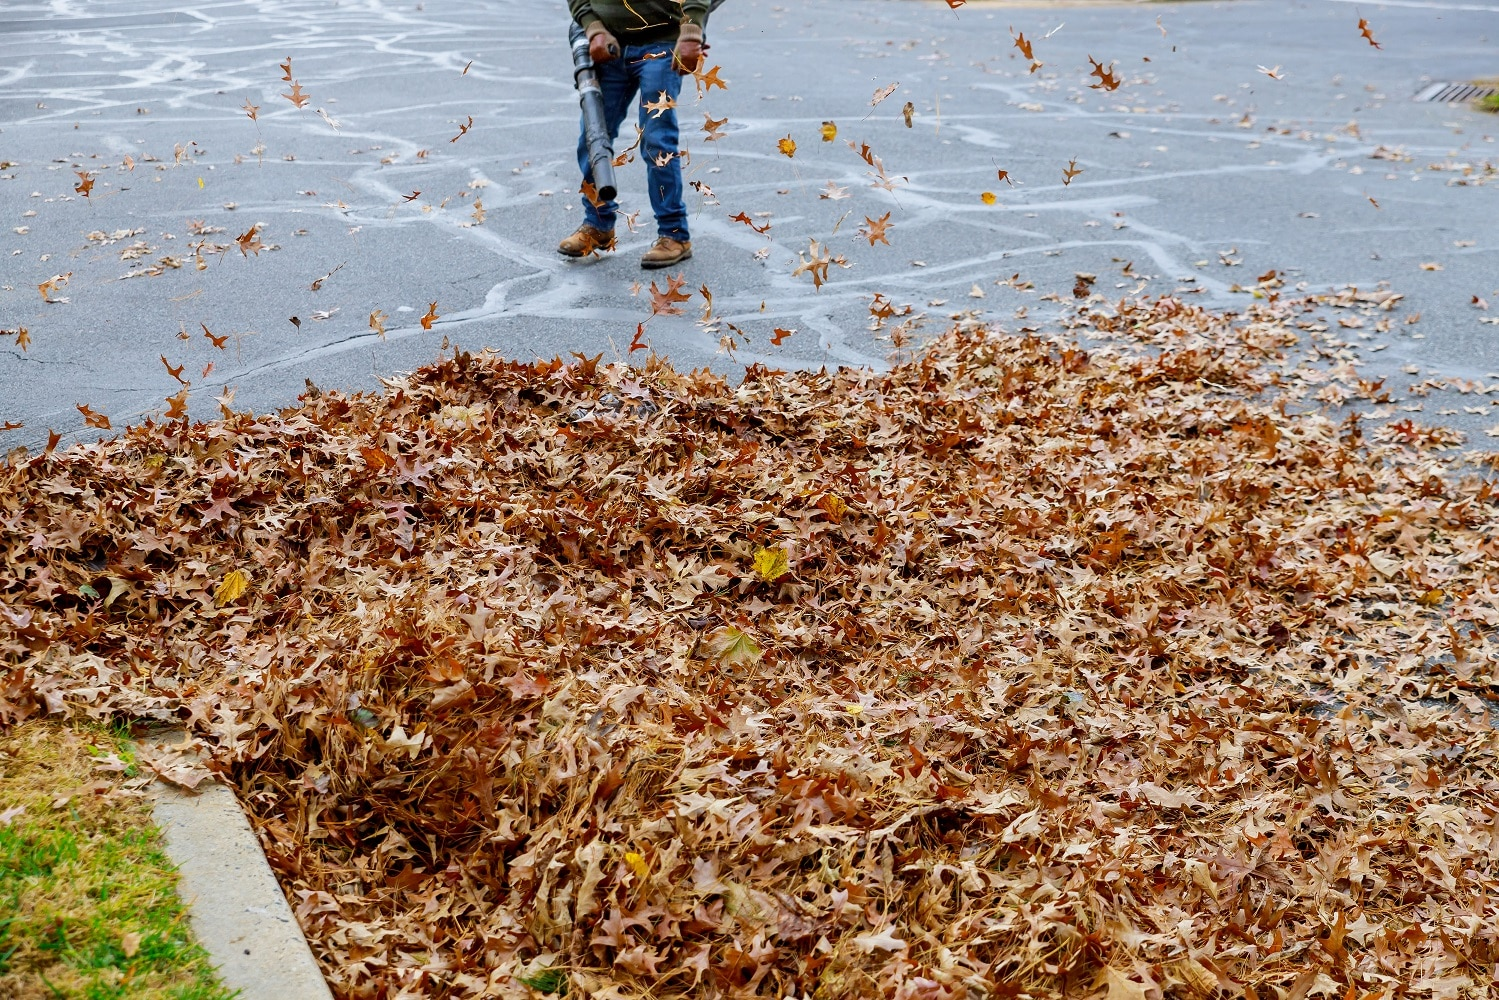 Man working with best leaf blower: the leaves are up and down on a sunny day